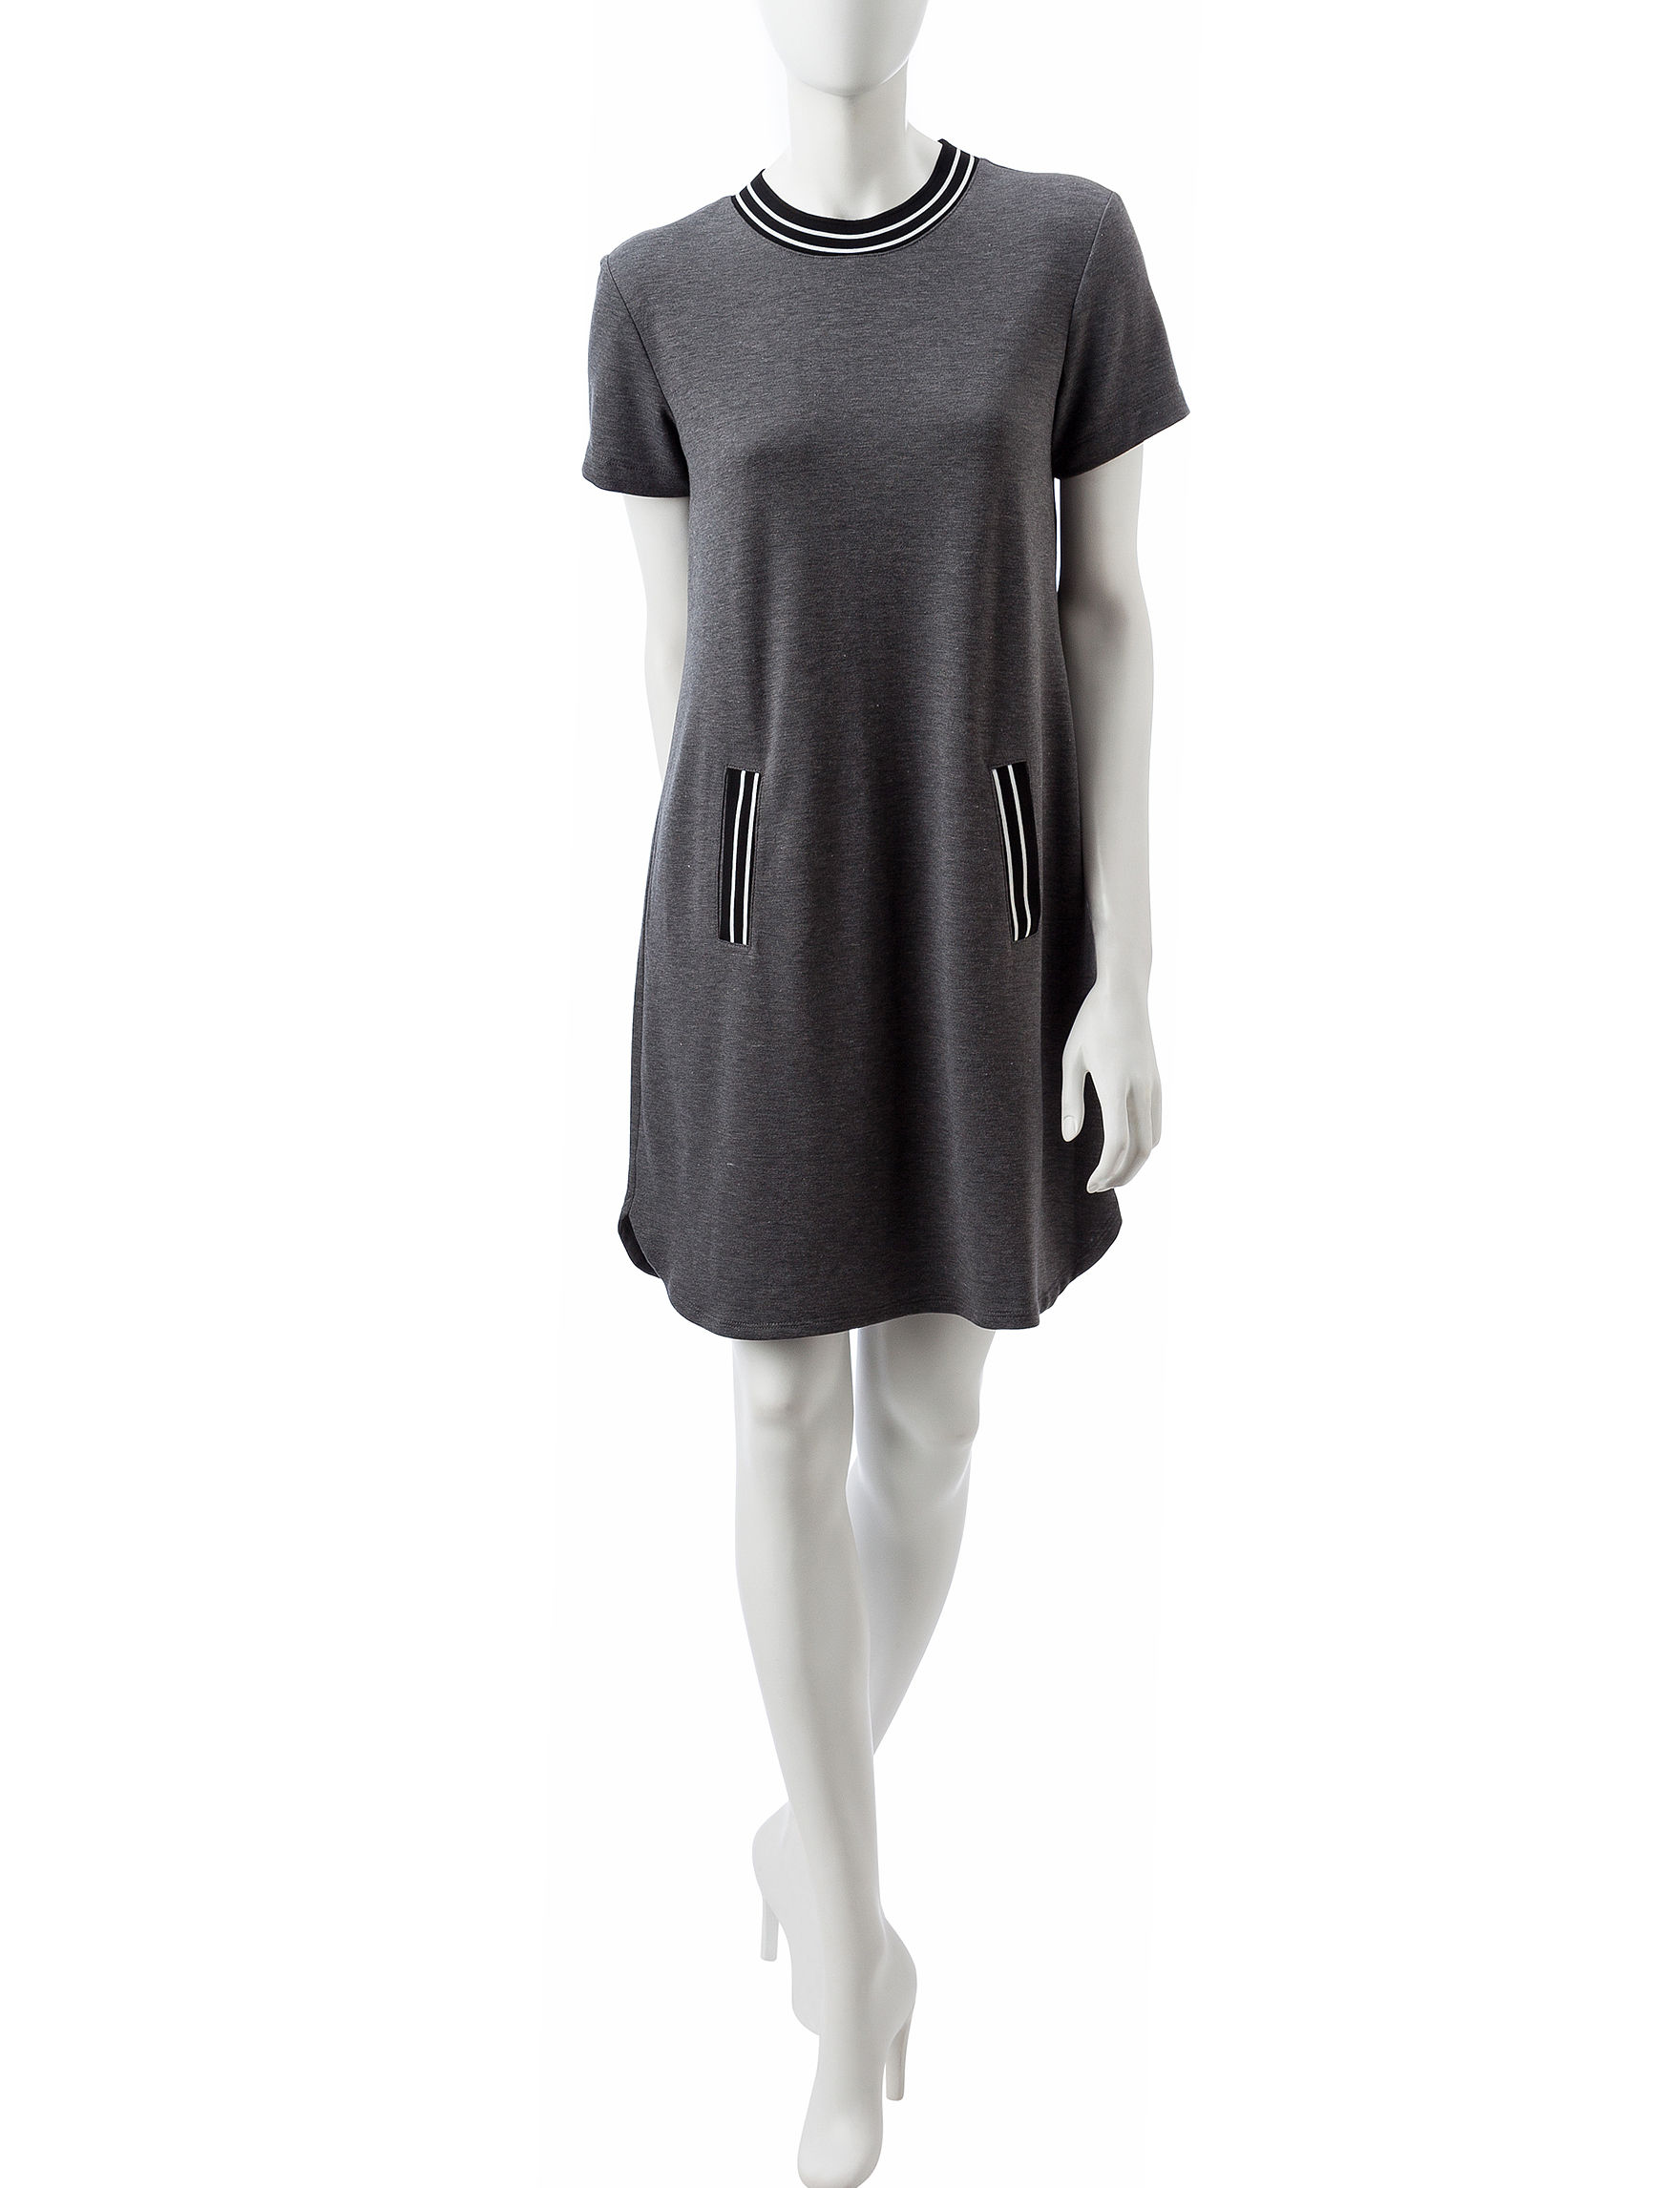 A. Byer Heather Grey Everyday & Casual Shift Dresses